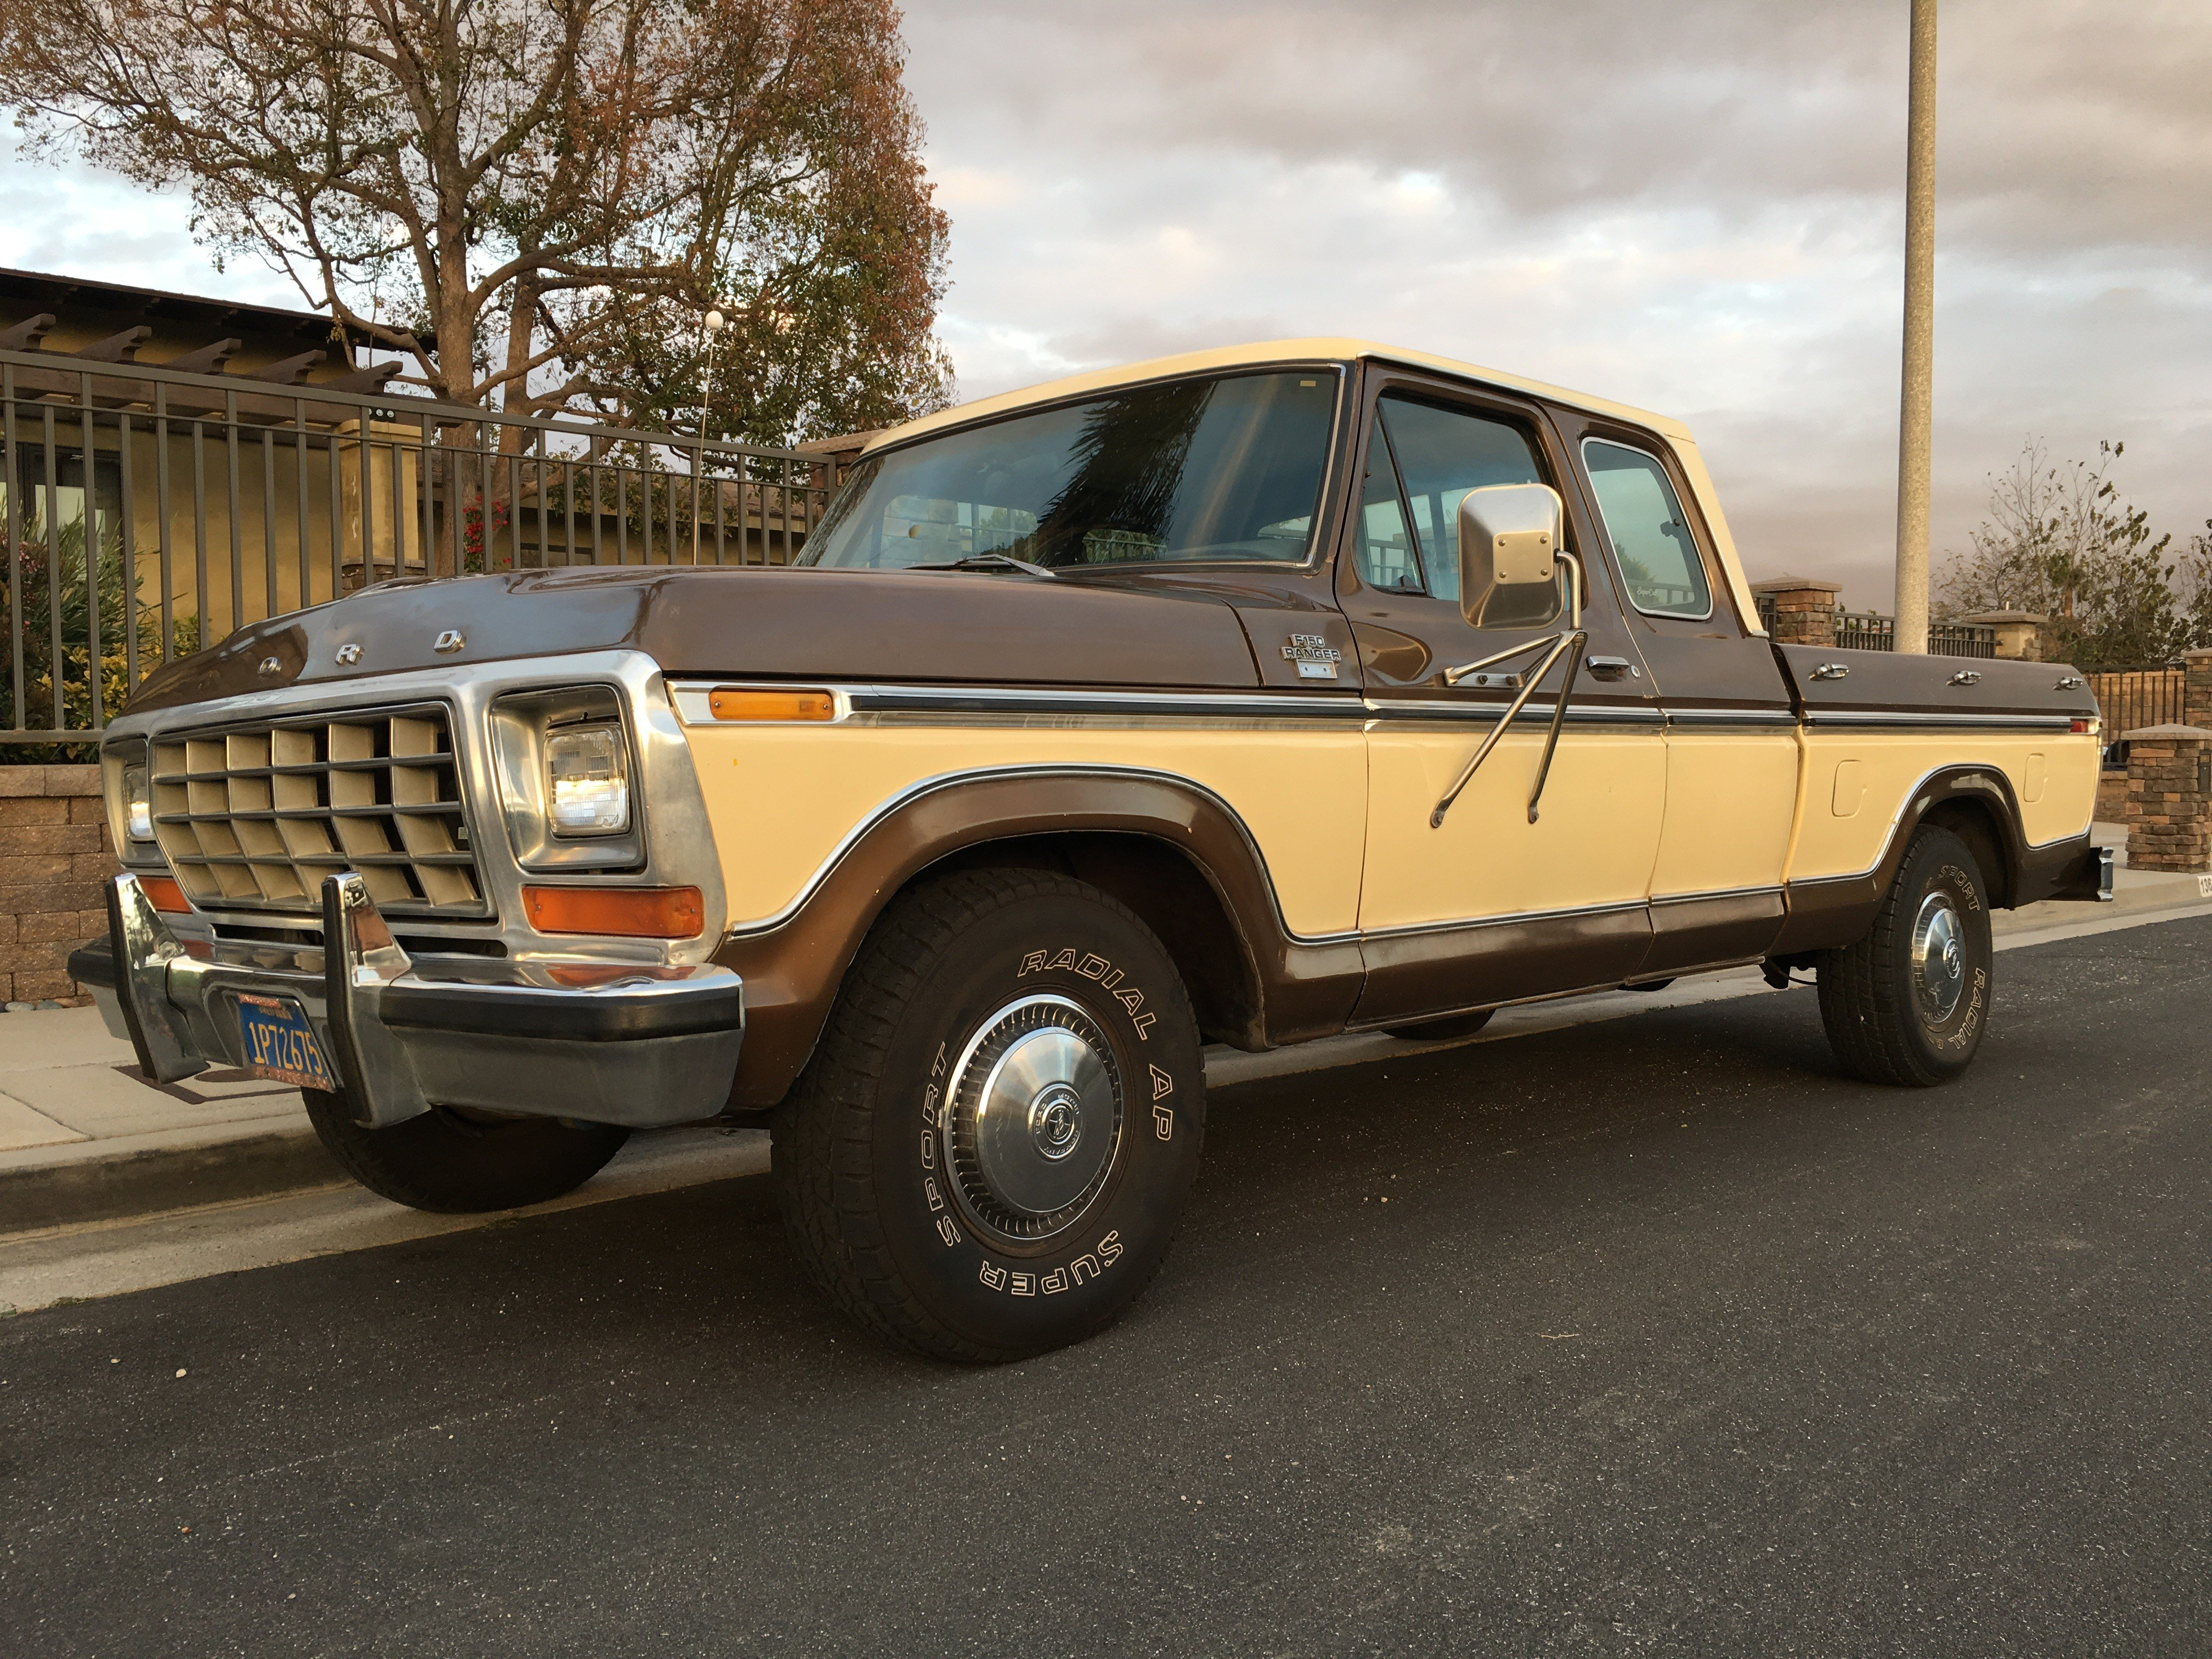 Old Ford Trucks Lifted. Lifted Ford Trucks With Old Ford Trucks ...